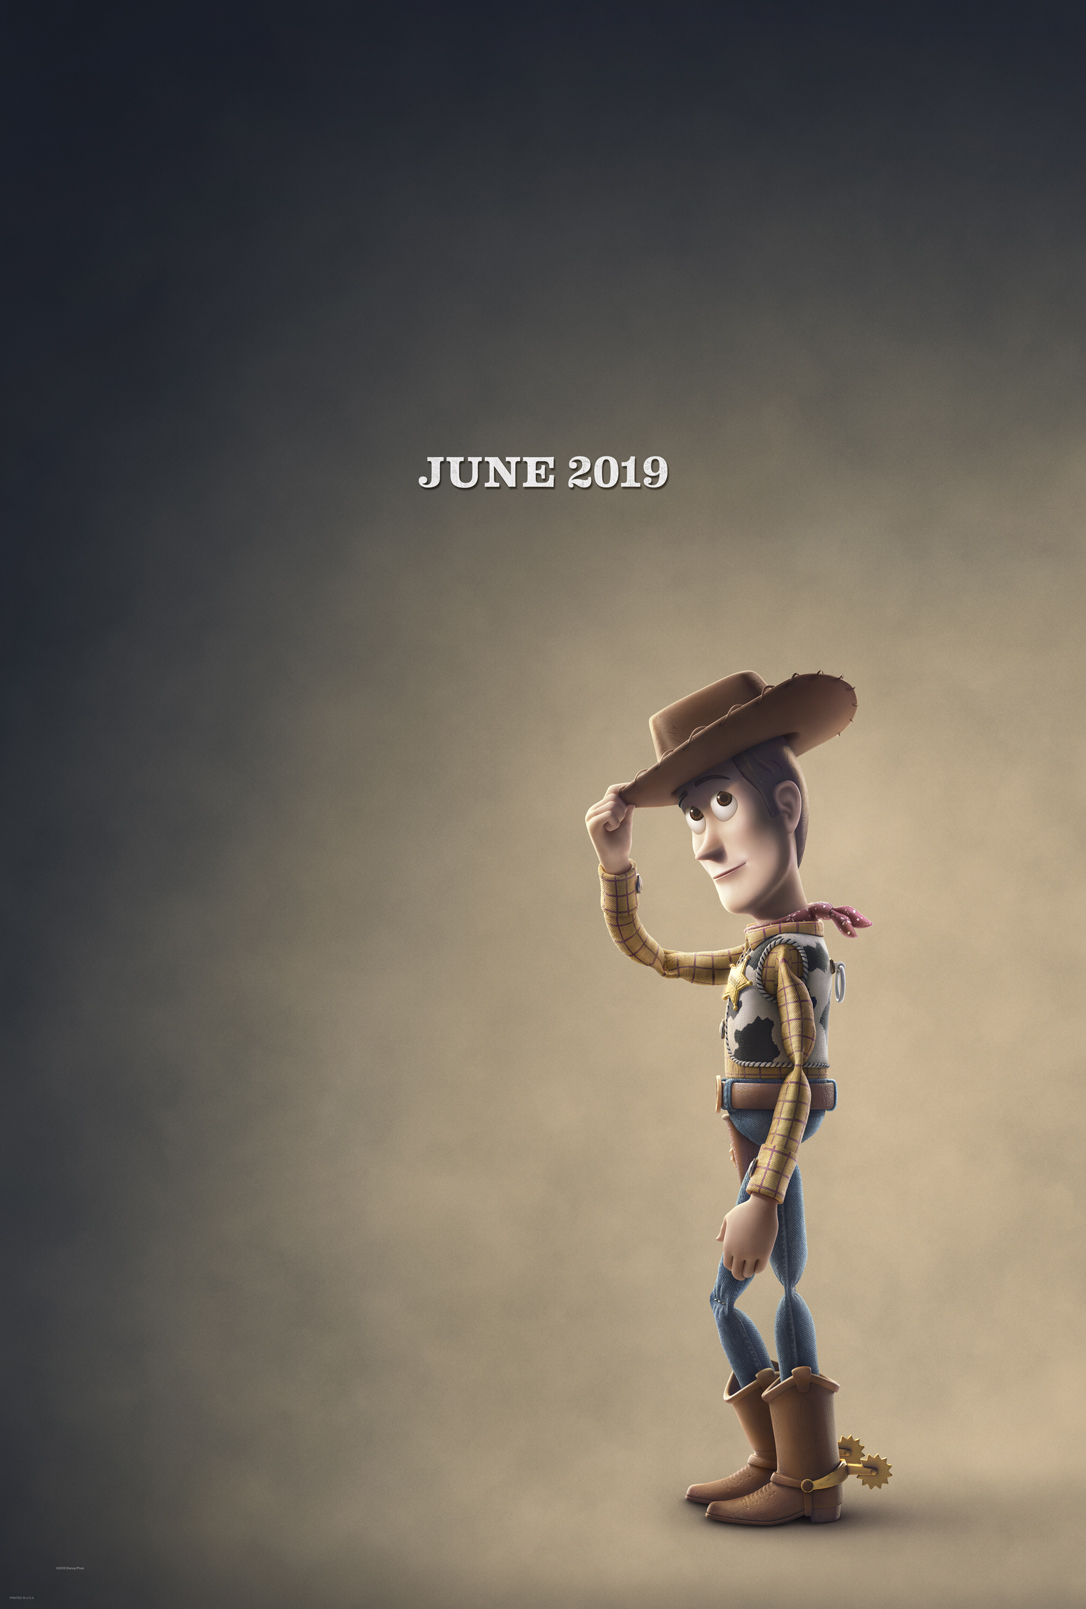 The long-awaited Toy Story 4 is one of the Disney movies coming out in 2019!